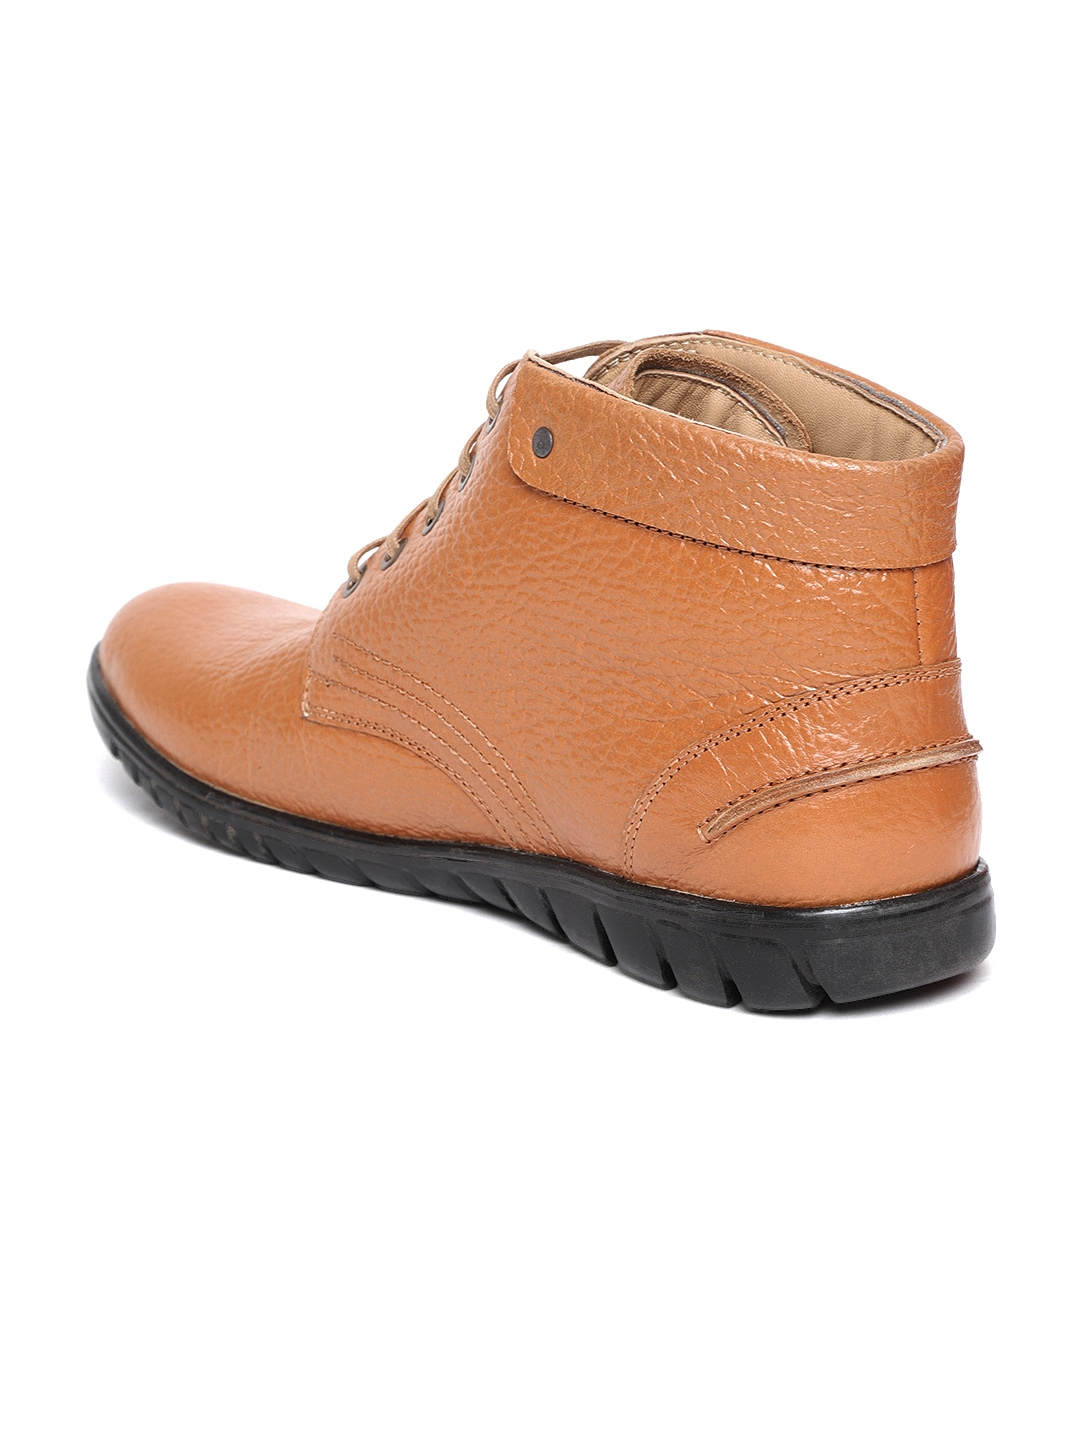 Buy Red Chief Men Tan Brown Leather Flat Boots - Casual Shoes for ... 51b88c834539